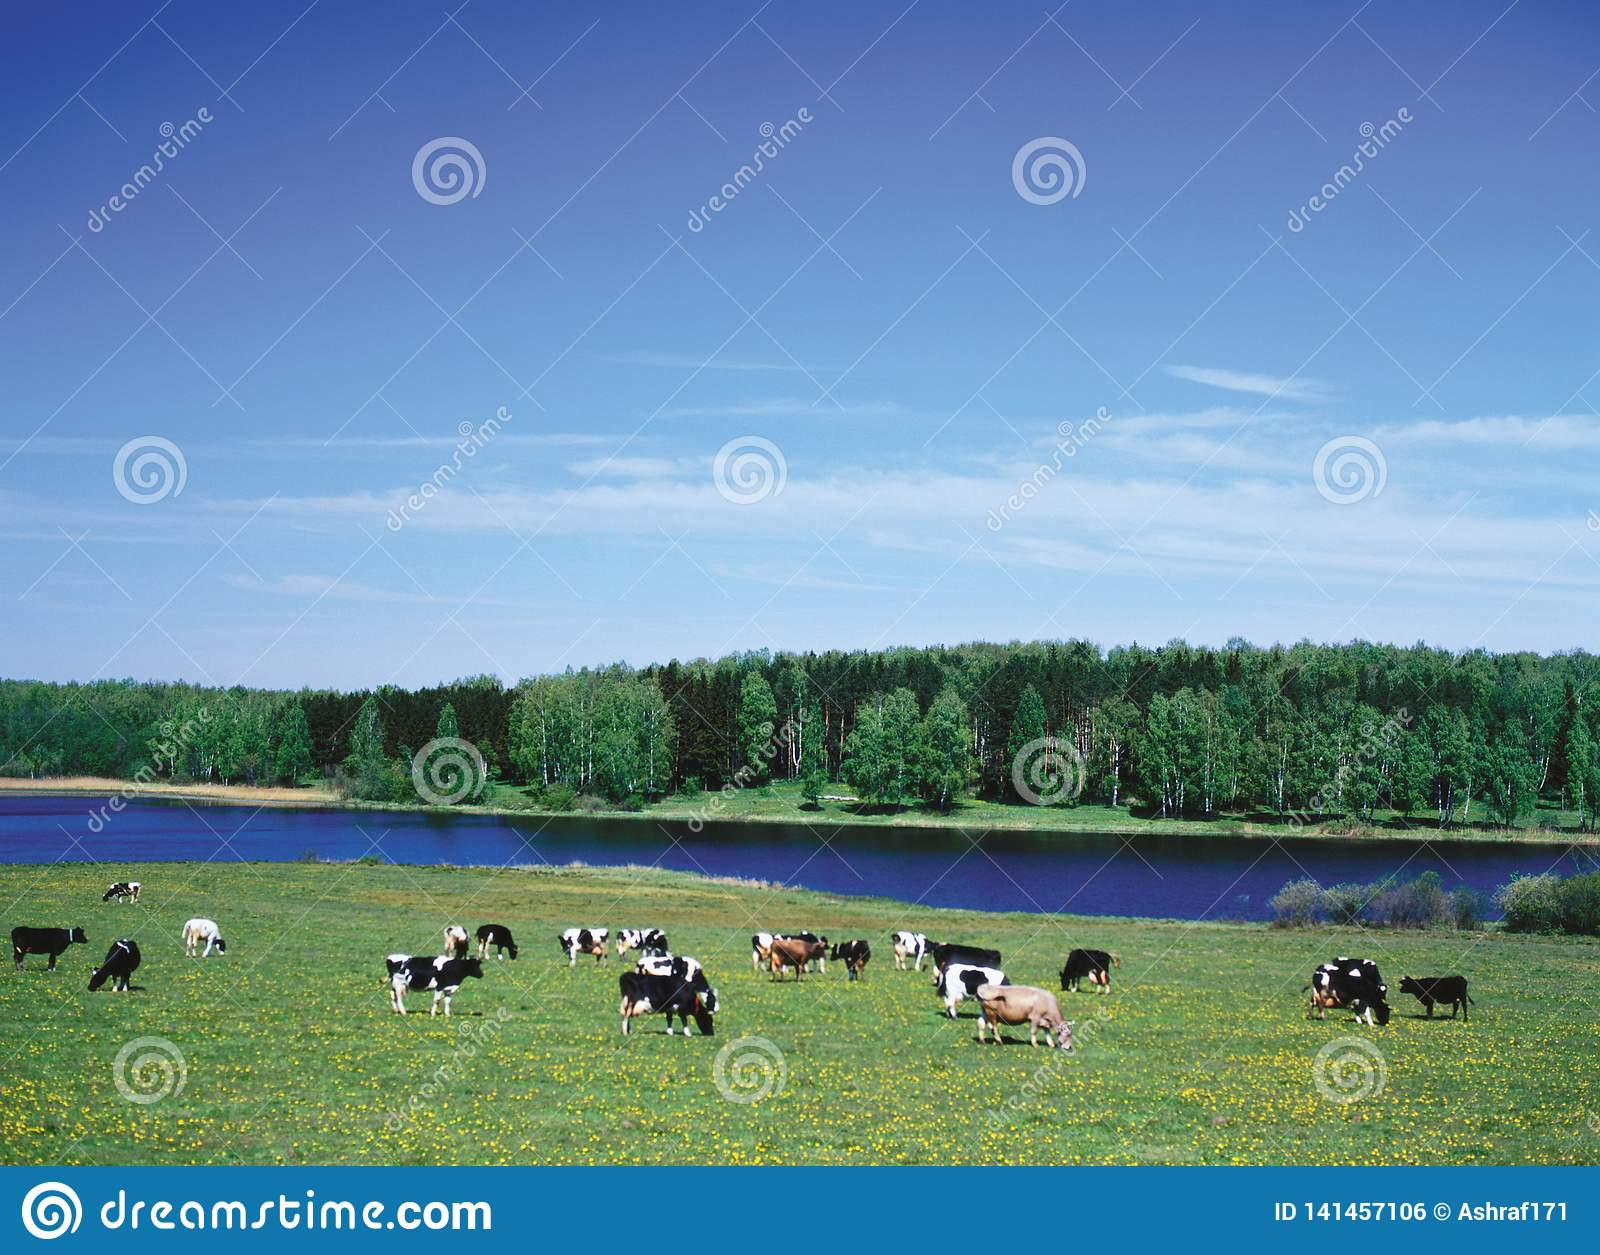 Farm Animals - herd of cattle crowd in Pasture